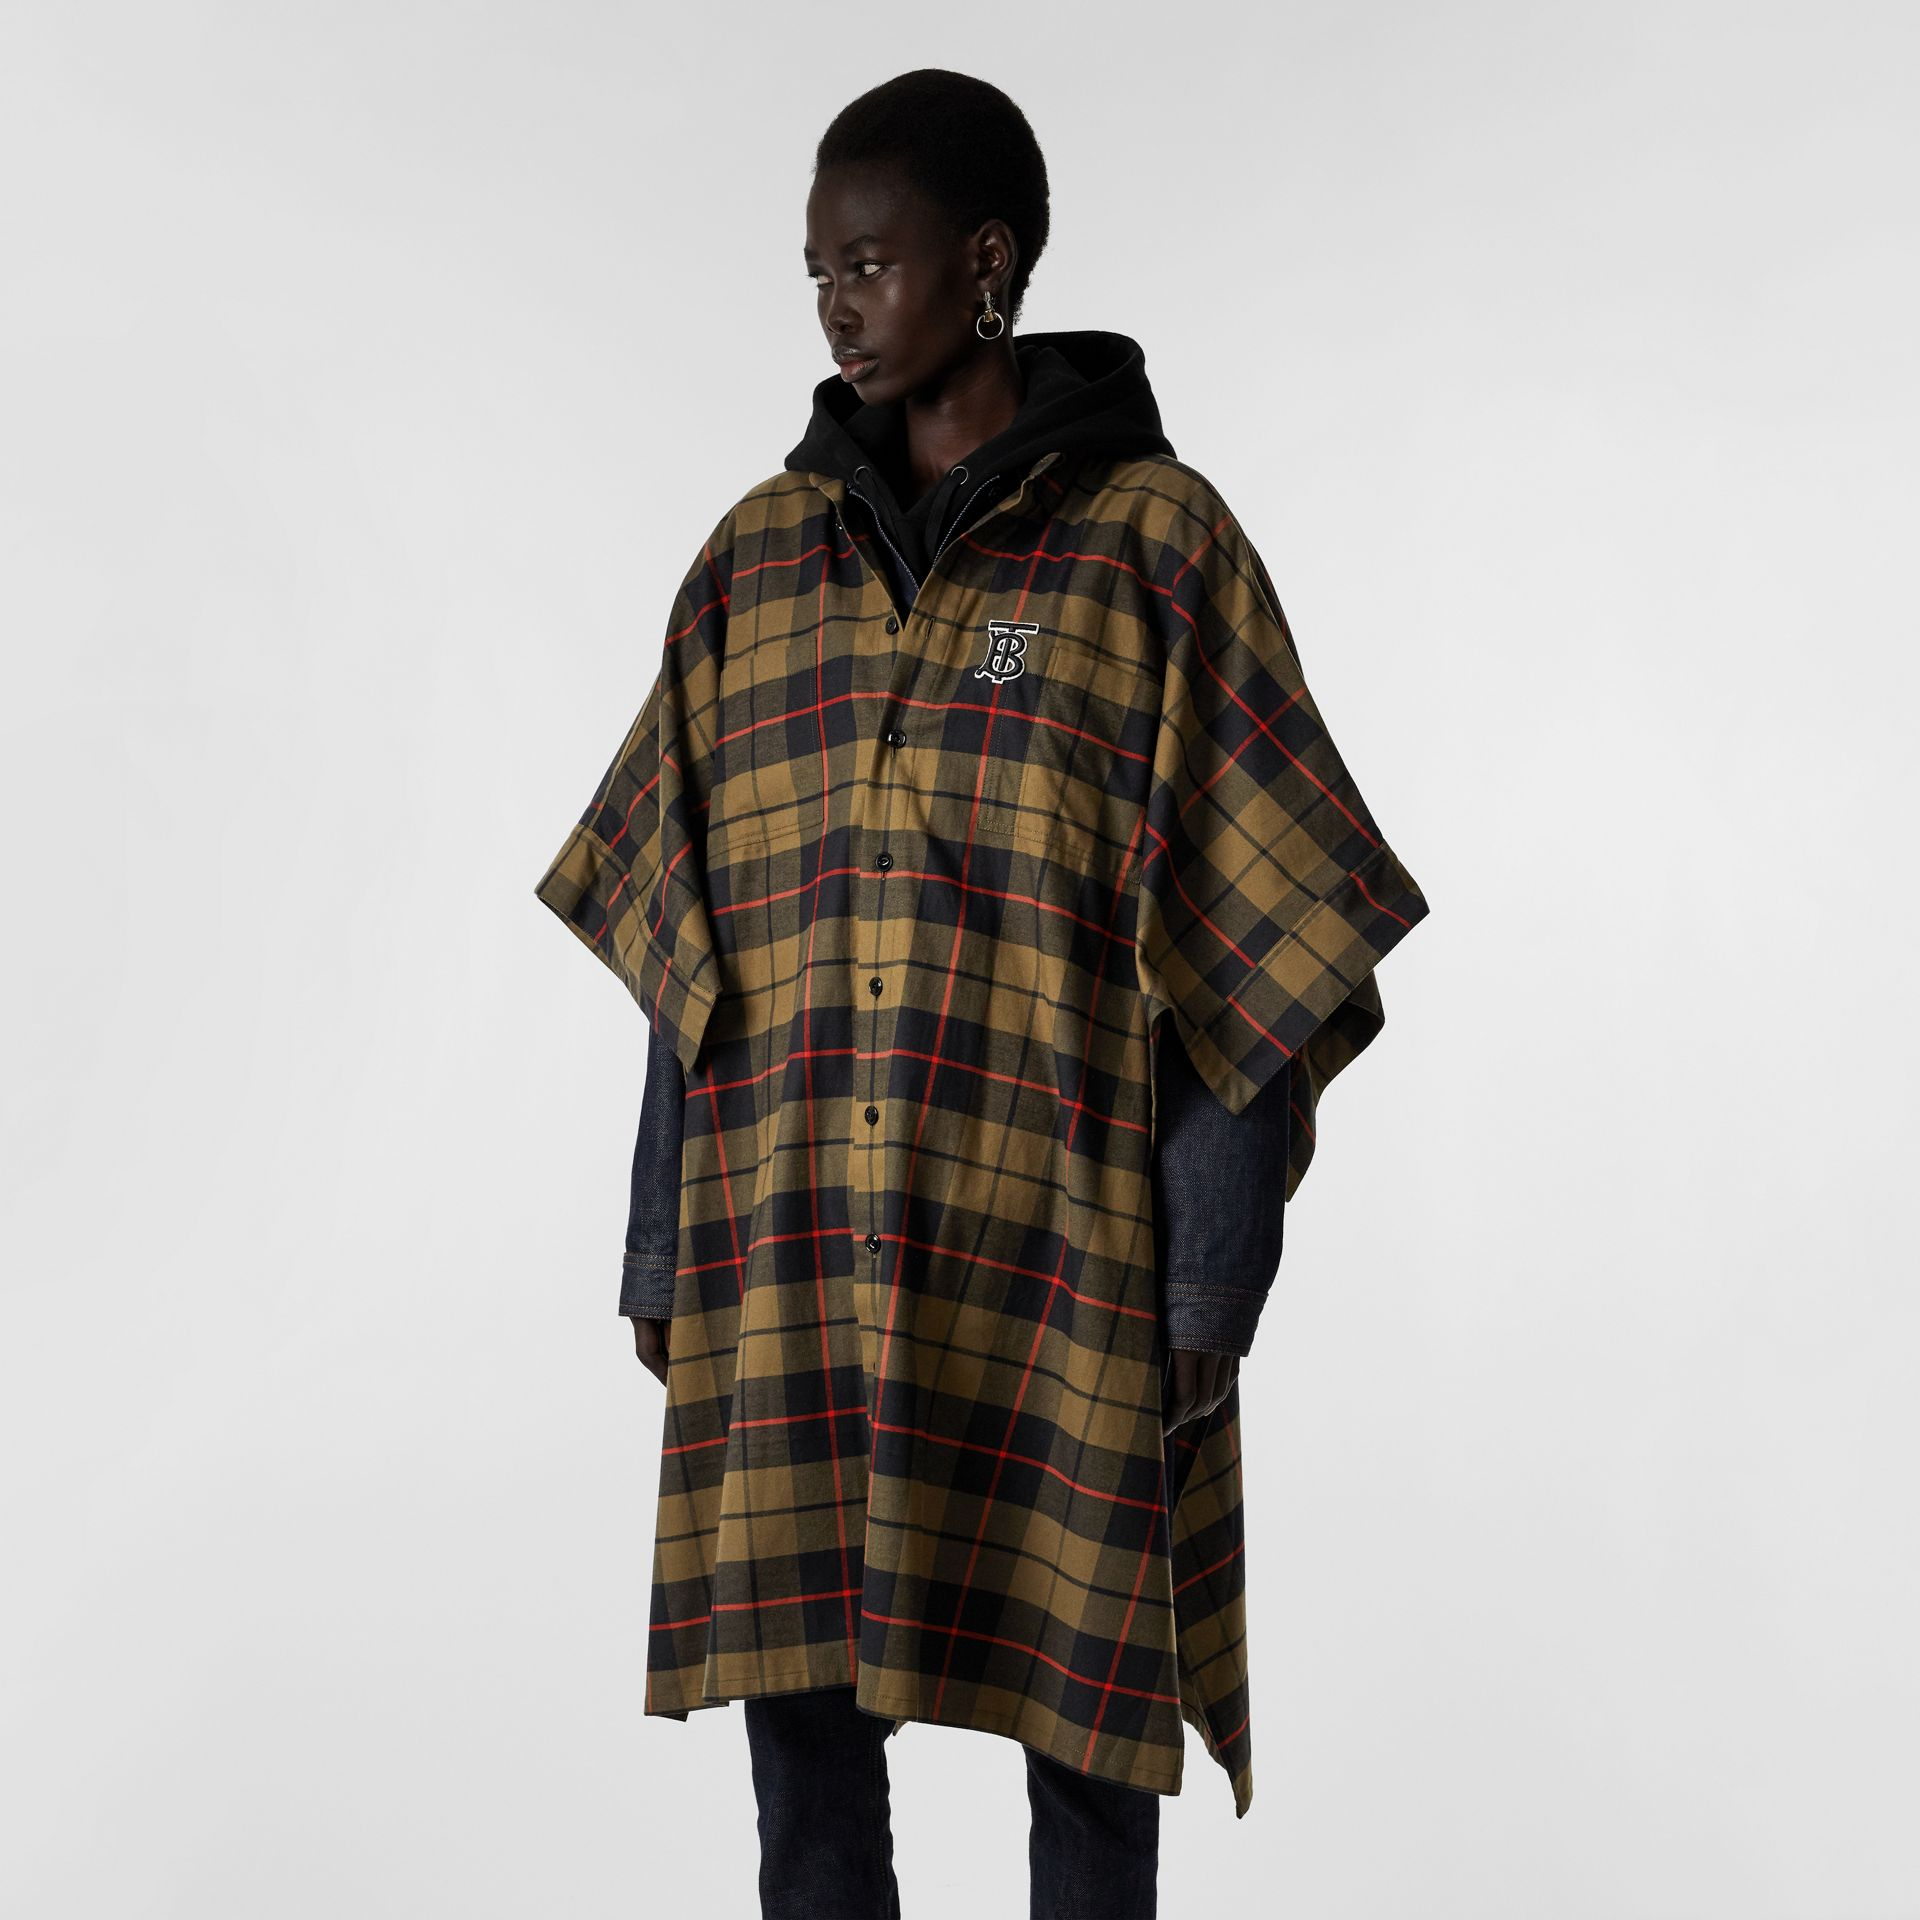 Monogram Motif Check Cotton Oversized Poncho in Military Olive | Burberry Canada - gallery image 5